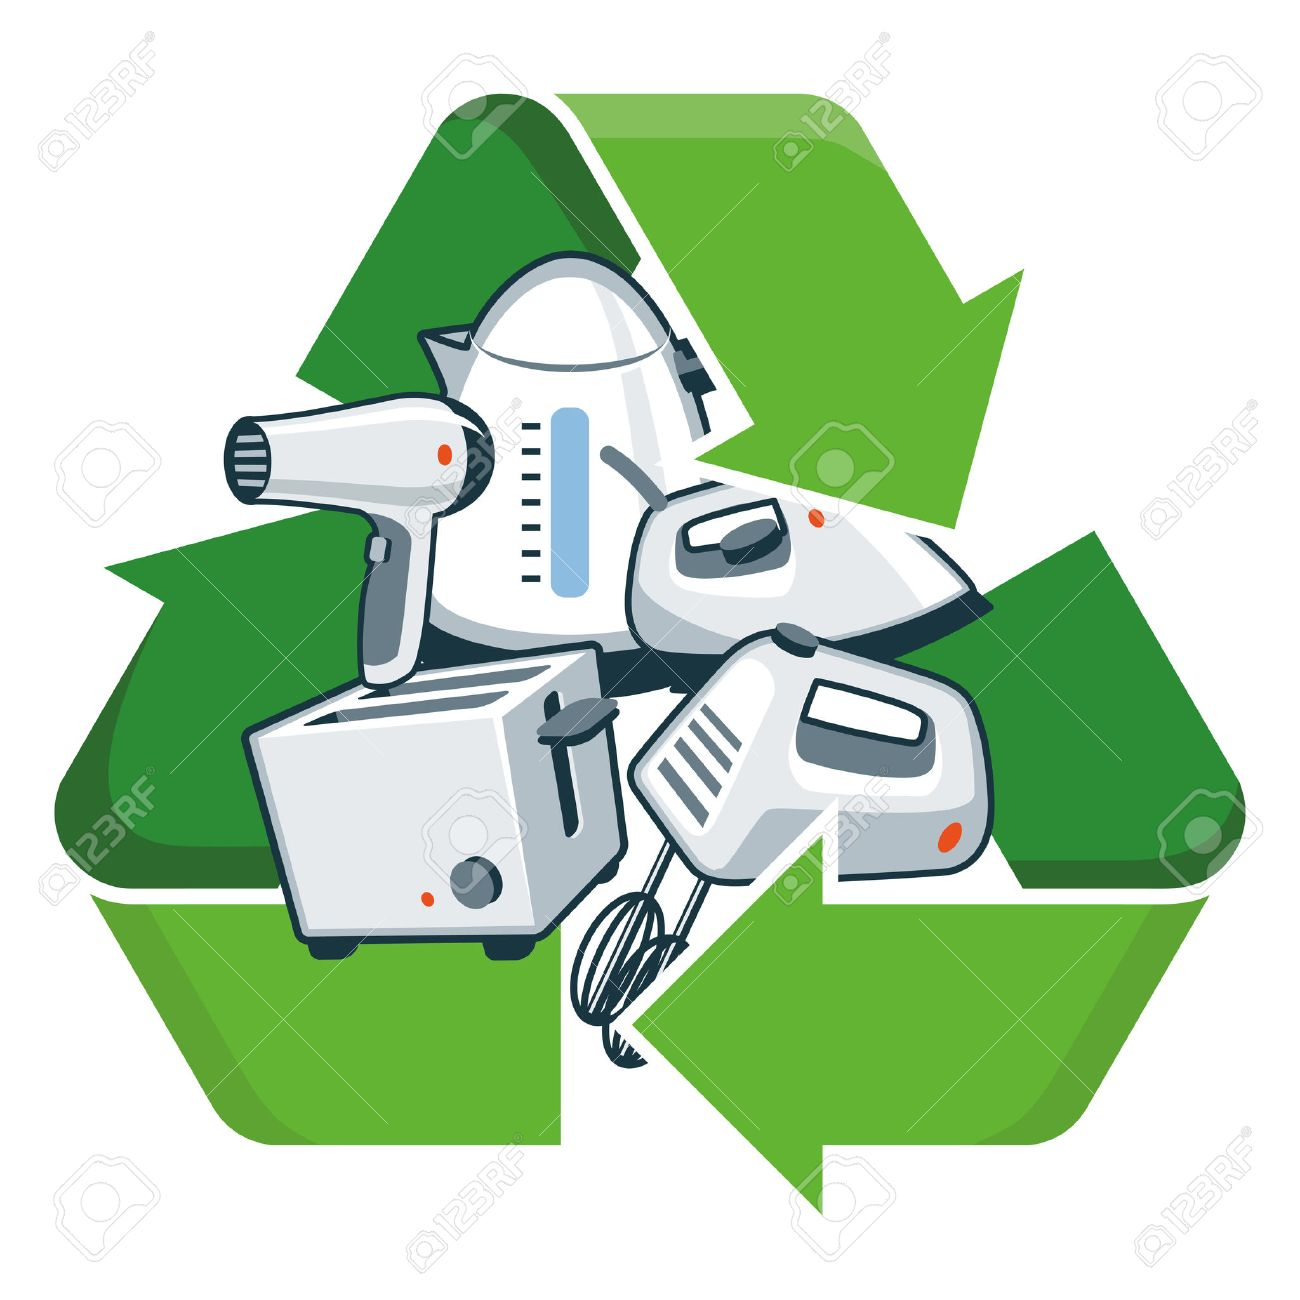 Small electronic home appliances with recycling symbol isolated small electronic home appliances with recycling symbol isolated vector illustration waste electrical and electronic equipment buycottarizona Choice Image